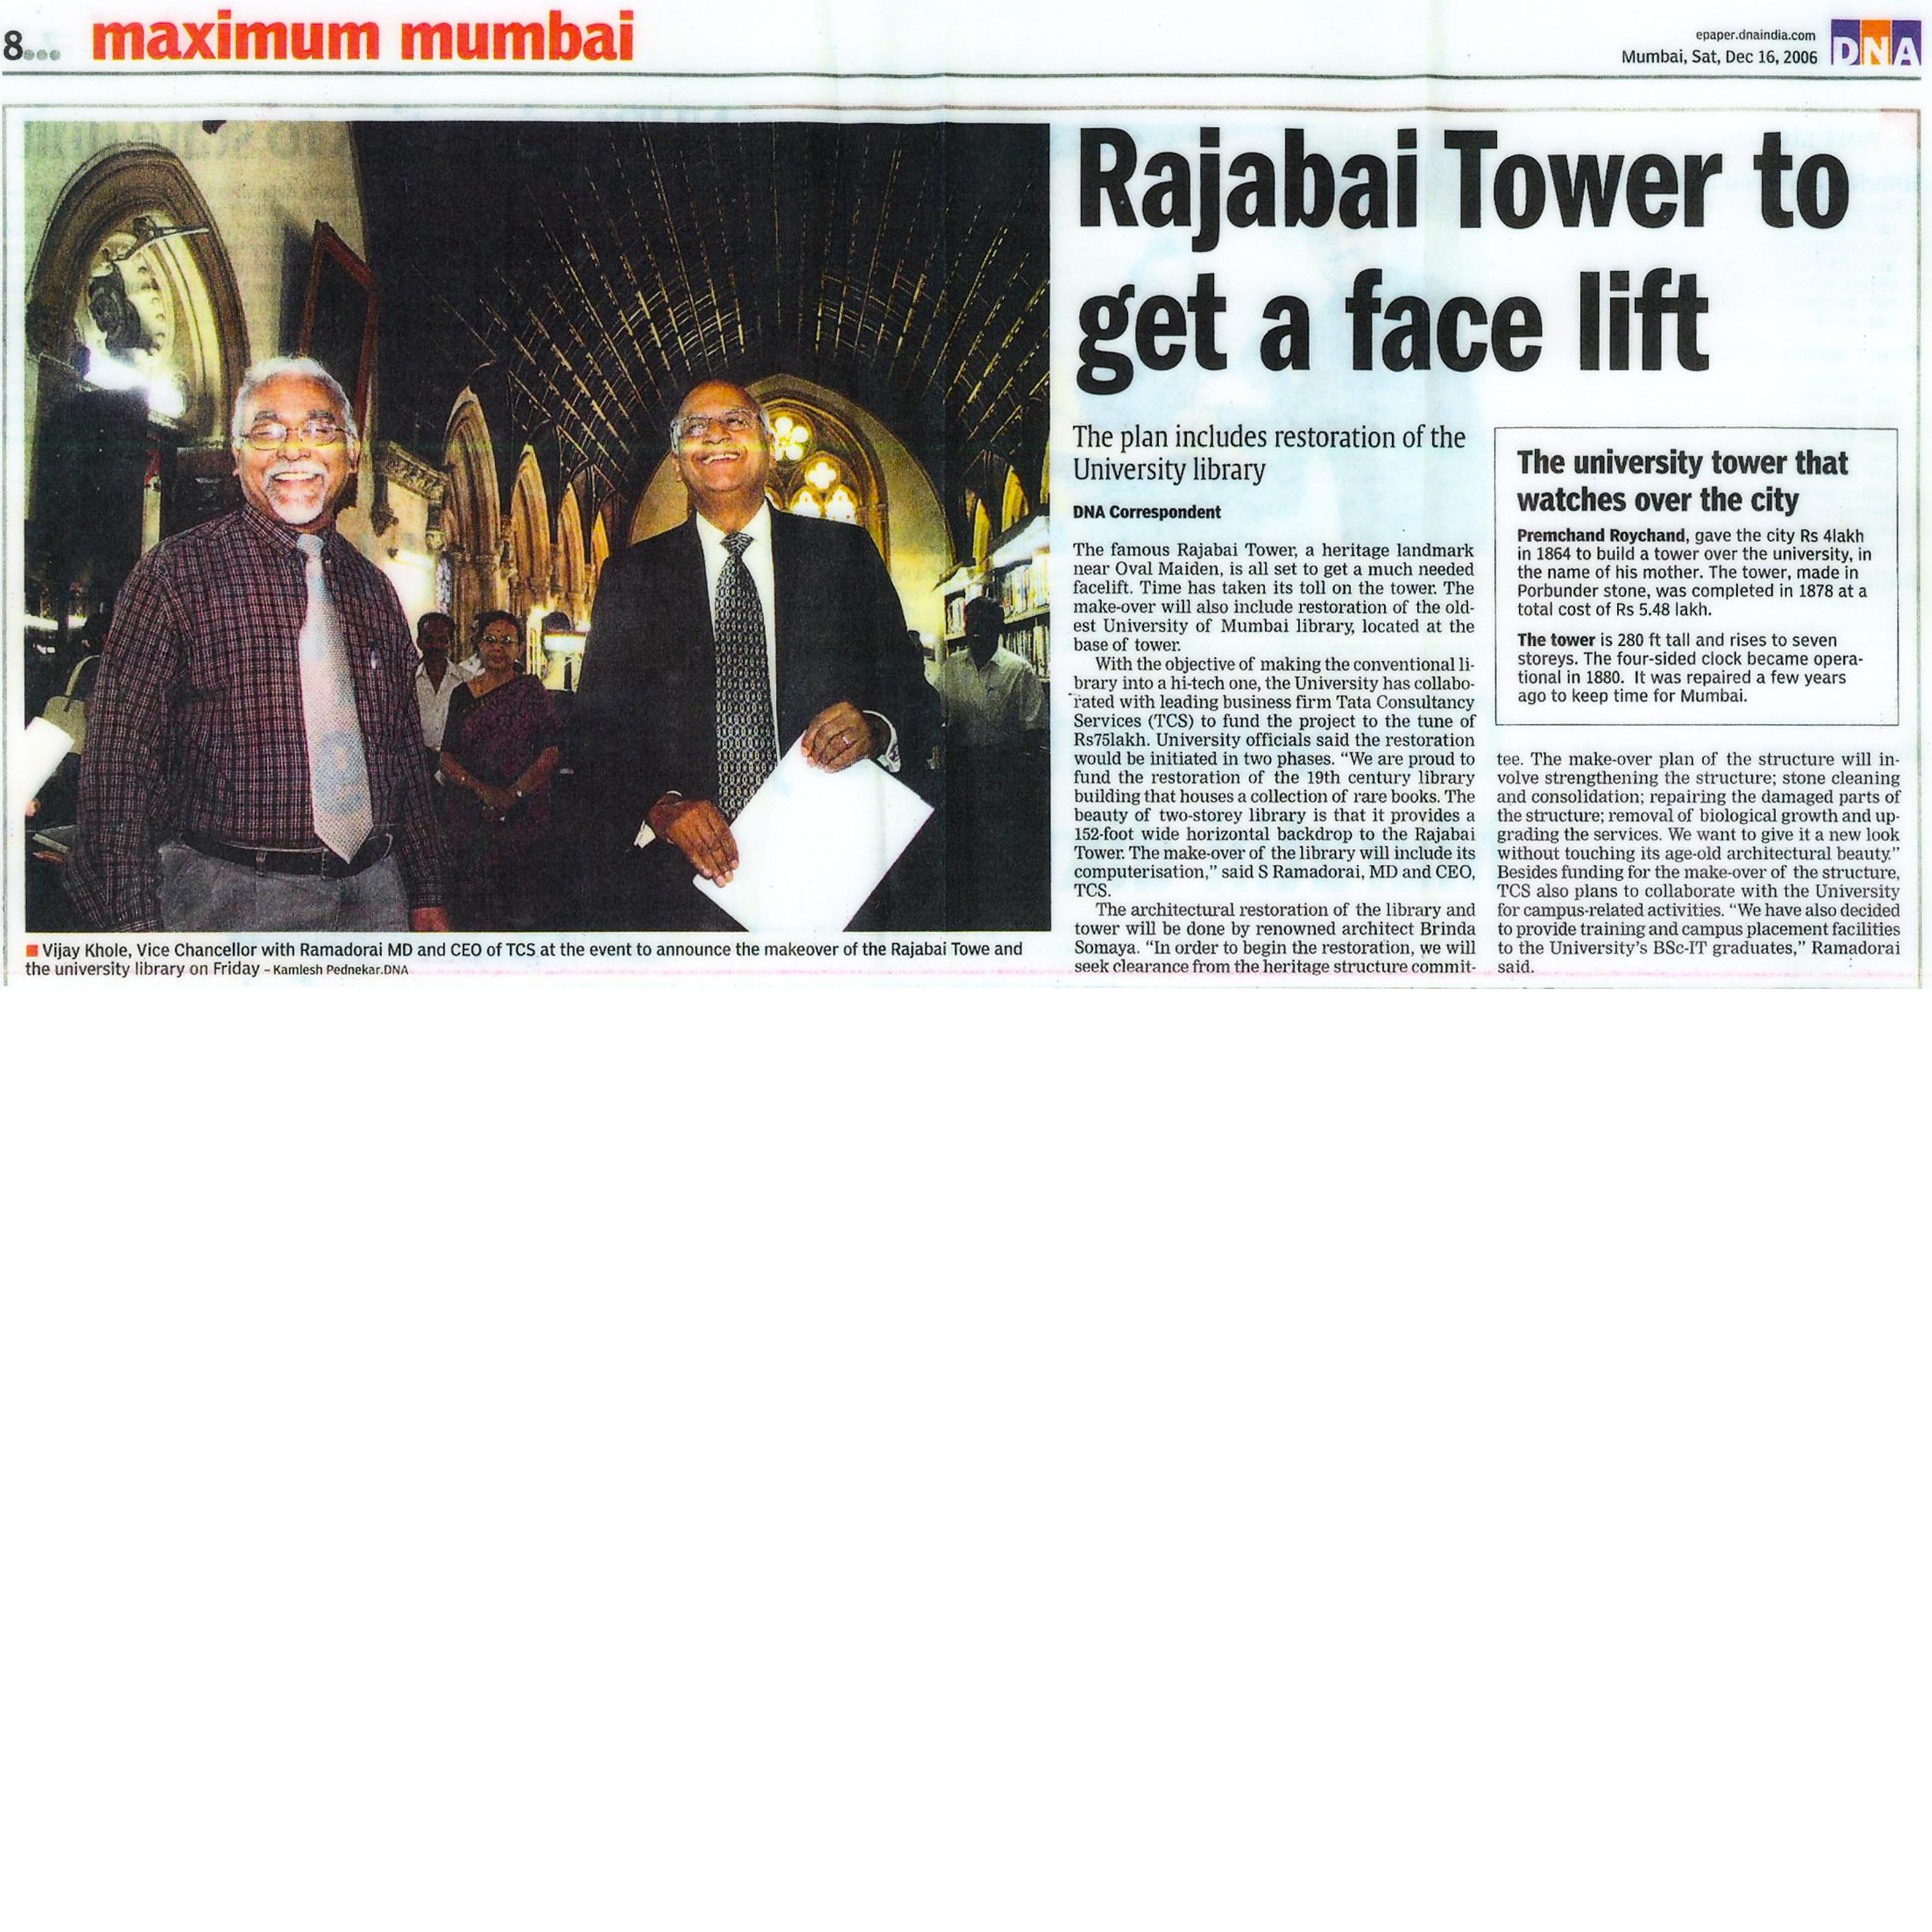 DNA India - Rajabai Tower to get a face lift